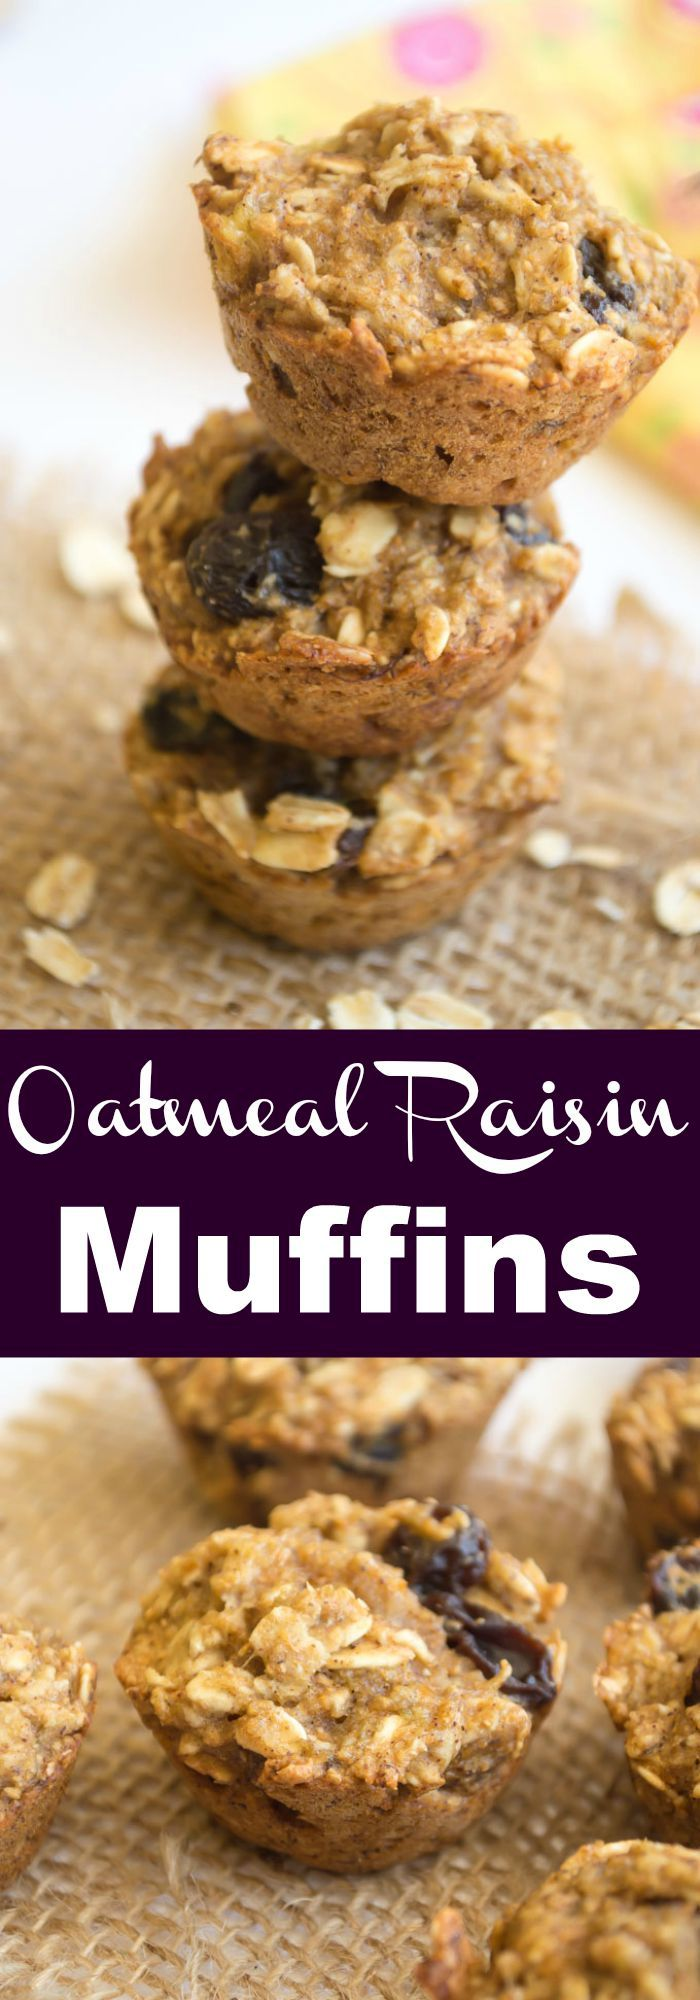 Oatmeal Raisin Muffins. These healthy muffins are perfect for breakfast or snacking. No eggs, oils, or refined sugars or flours!